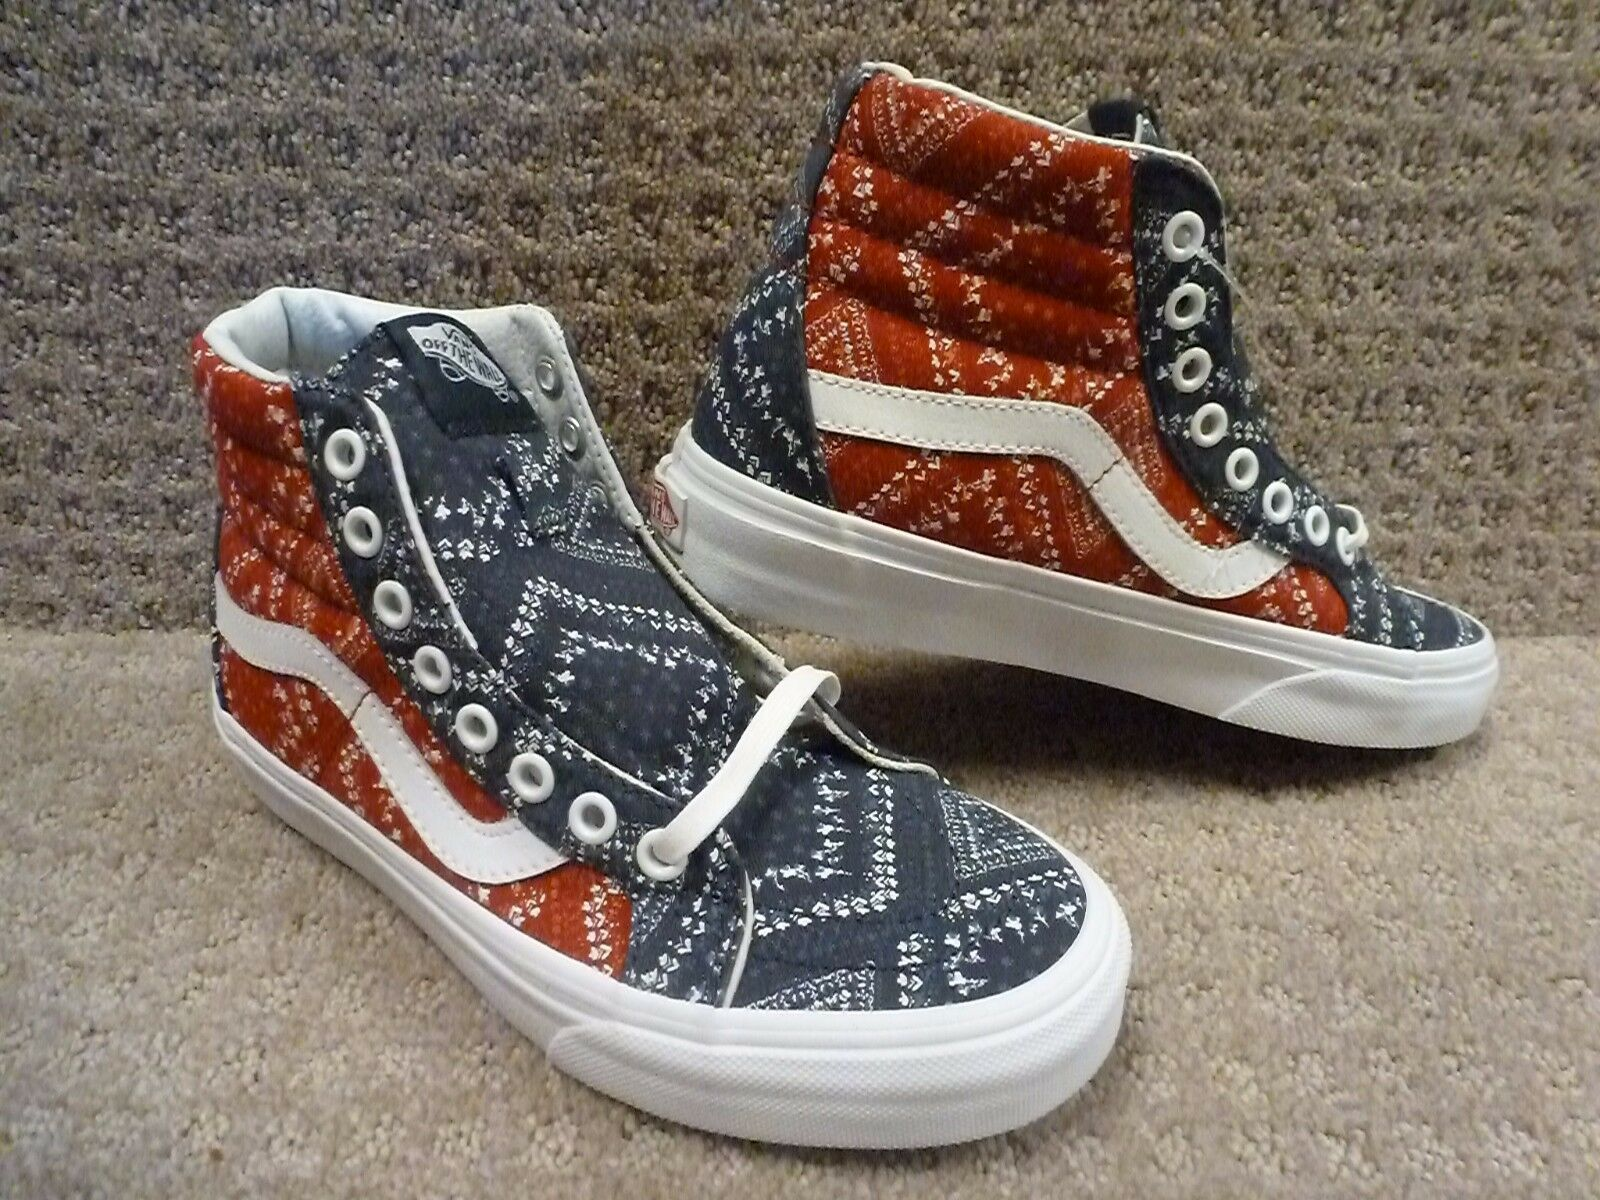 Vans Men's Shoes Chili